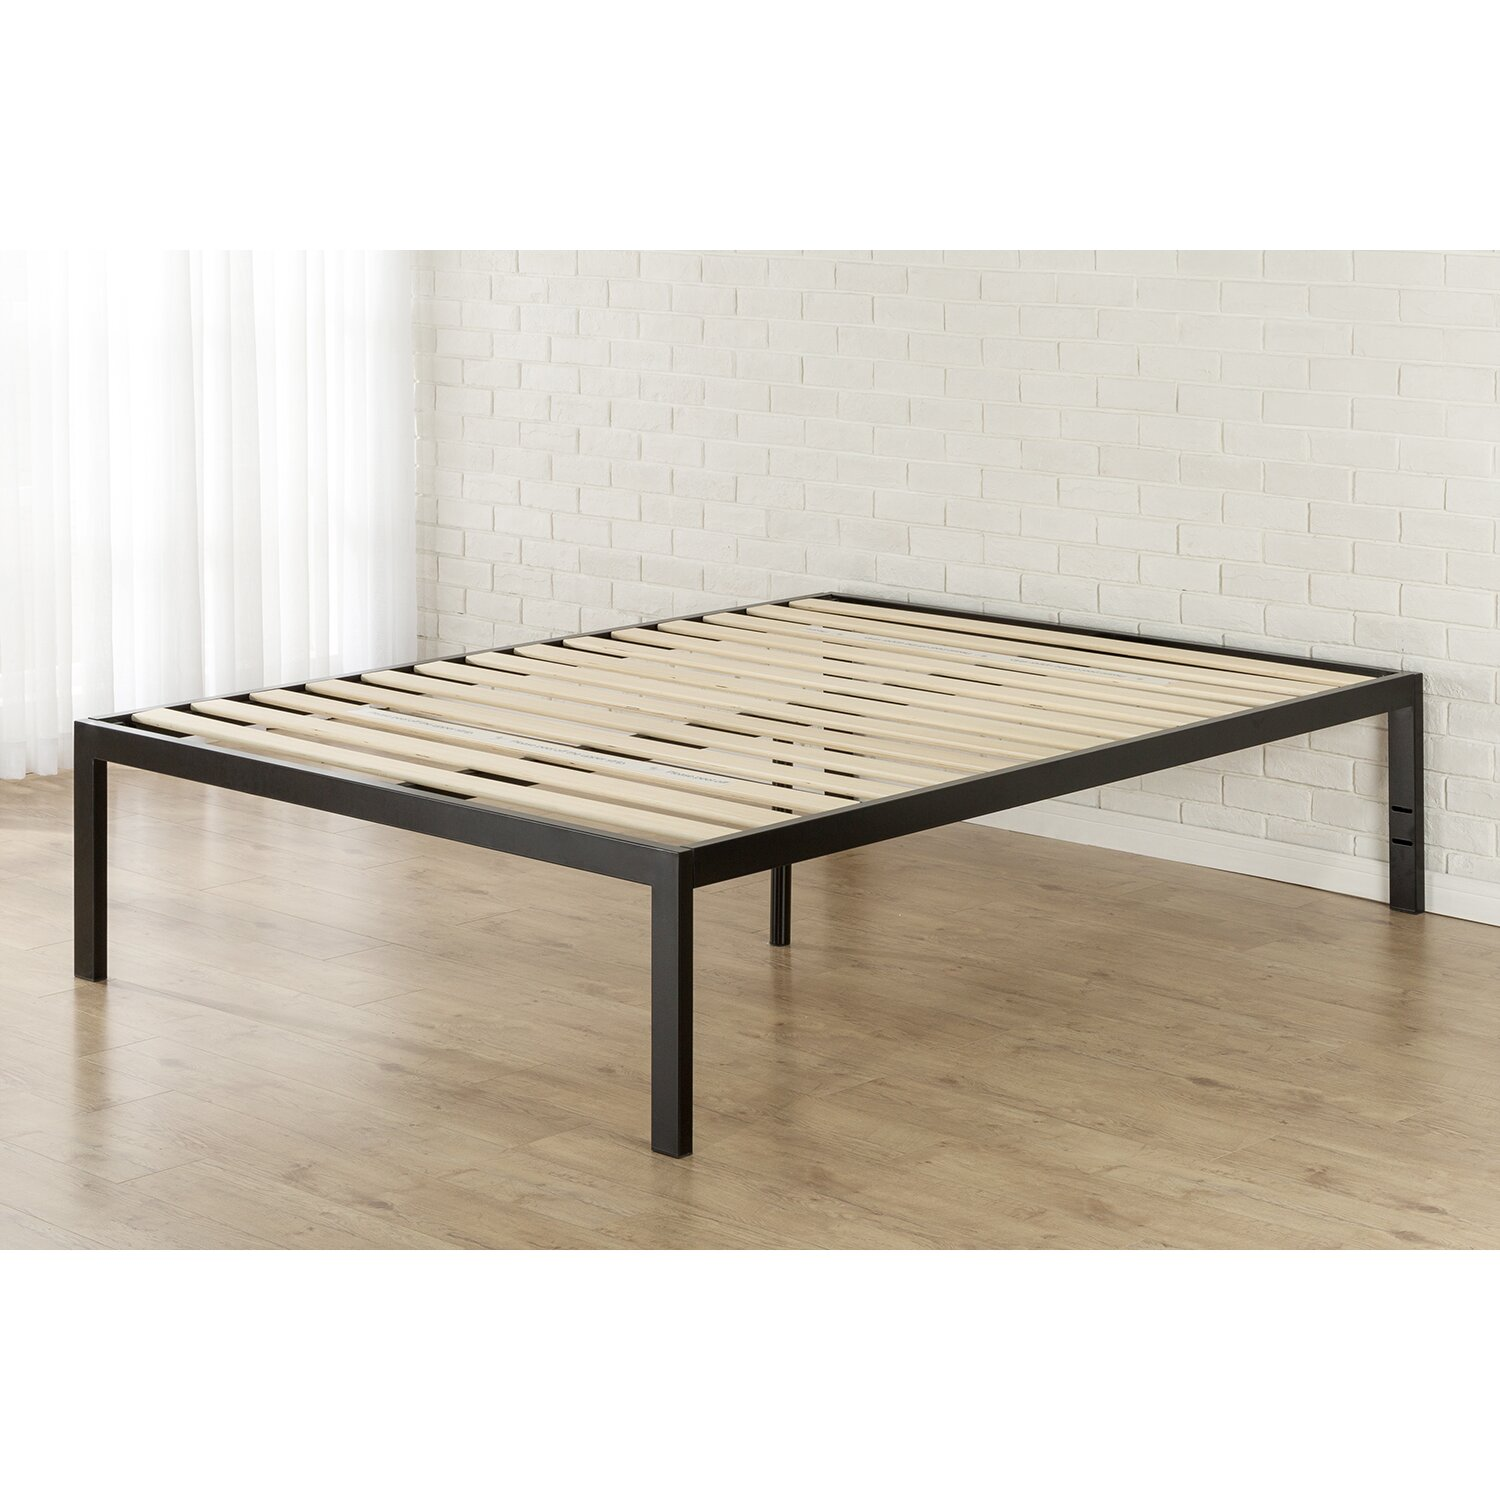 Quick Snap 18 Platform Bed Black Metal Beds You ll Love Wayfair Zinus Brown  Fabric. Poster Zinus Grey Beds   cpgworkflow com